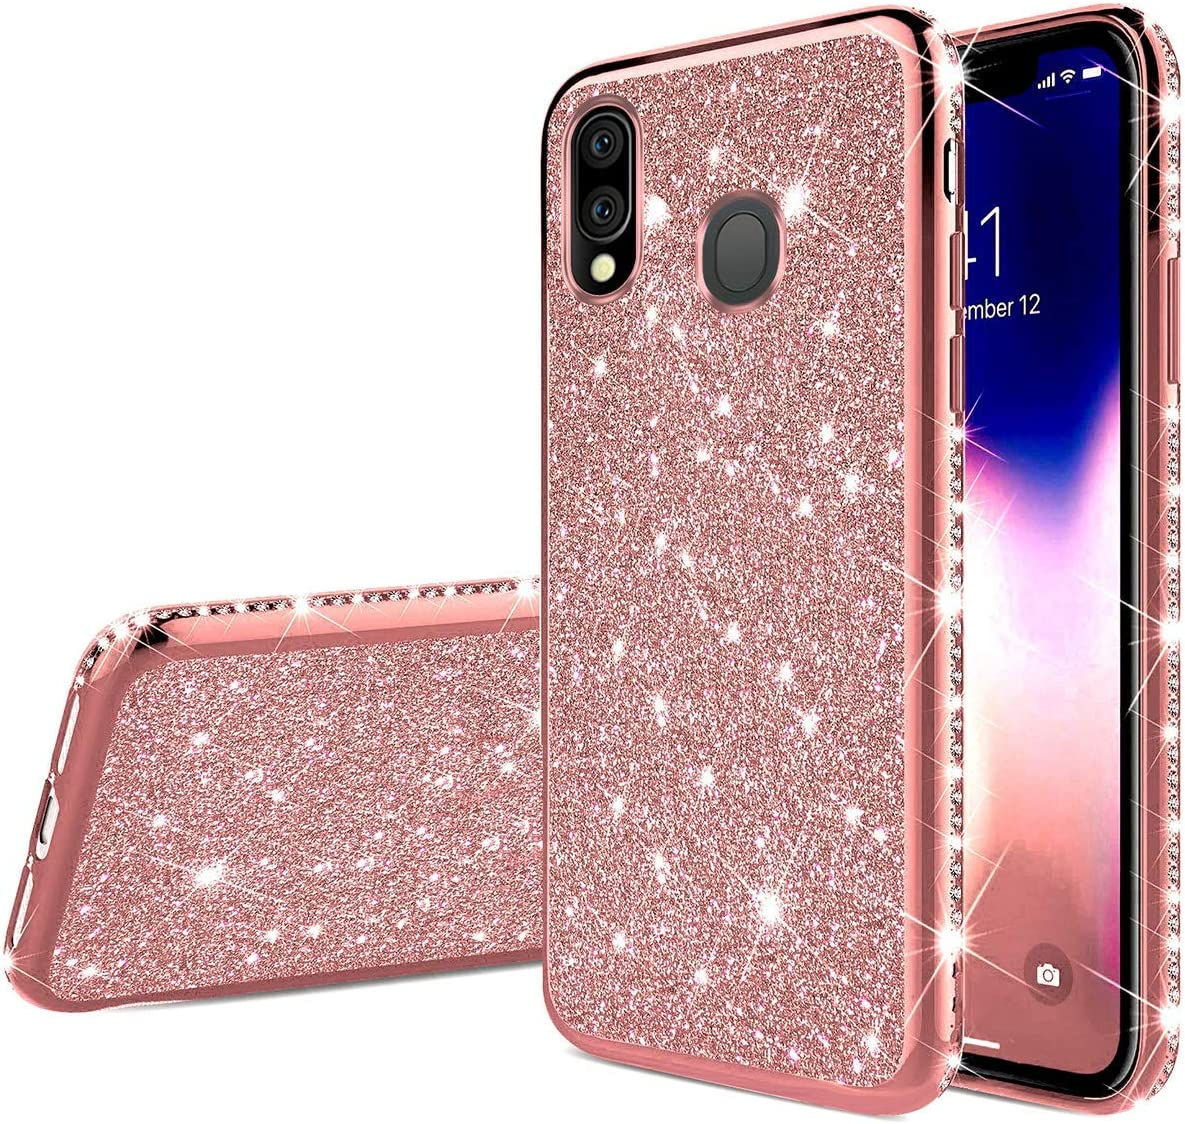 Herbests Compatible with Huawei Honor 8X Max Case Glitter Cute Girl Women Bling Crystal Diamond Rhinestone Clear Protective Phone Case Cover Shockproof TPU Rubber Silicone Cover,Gold